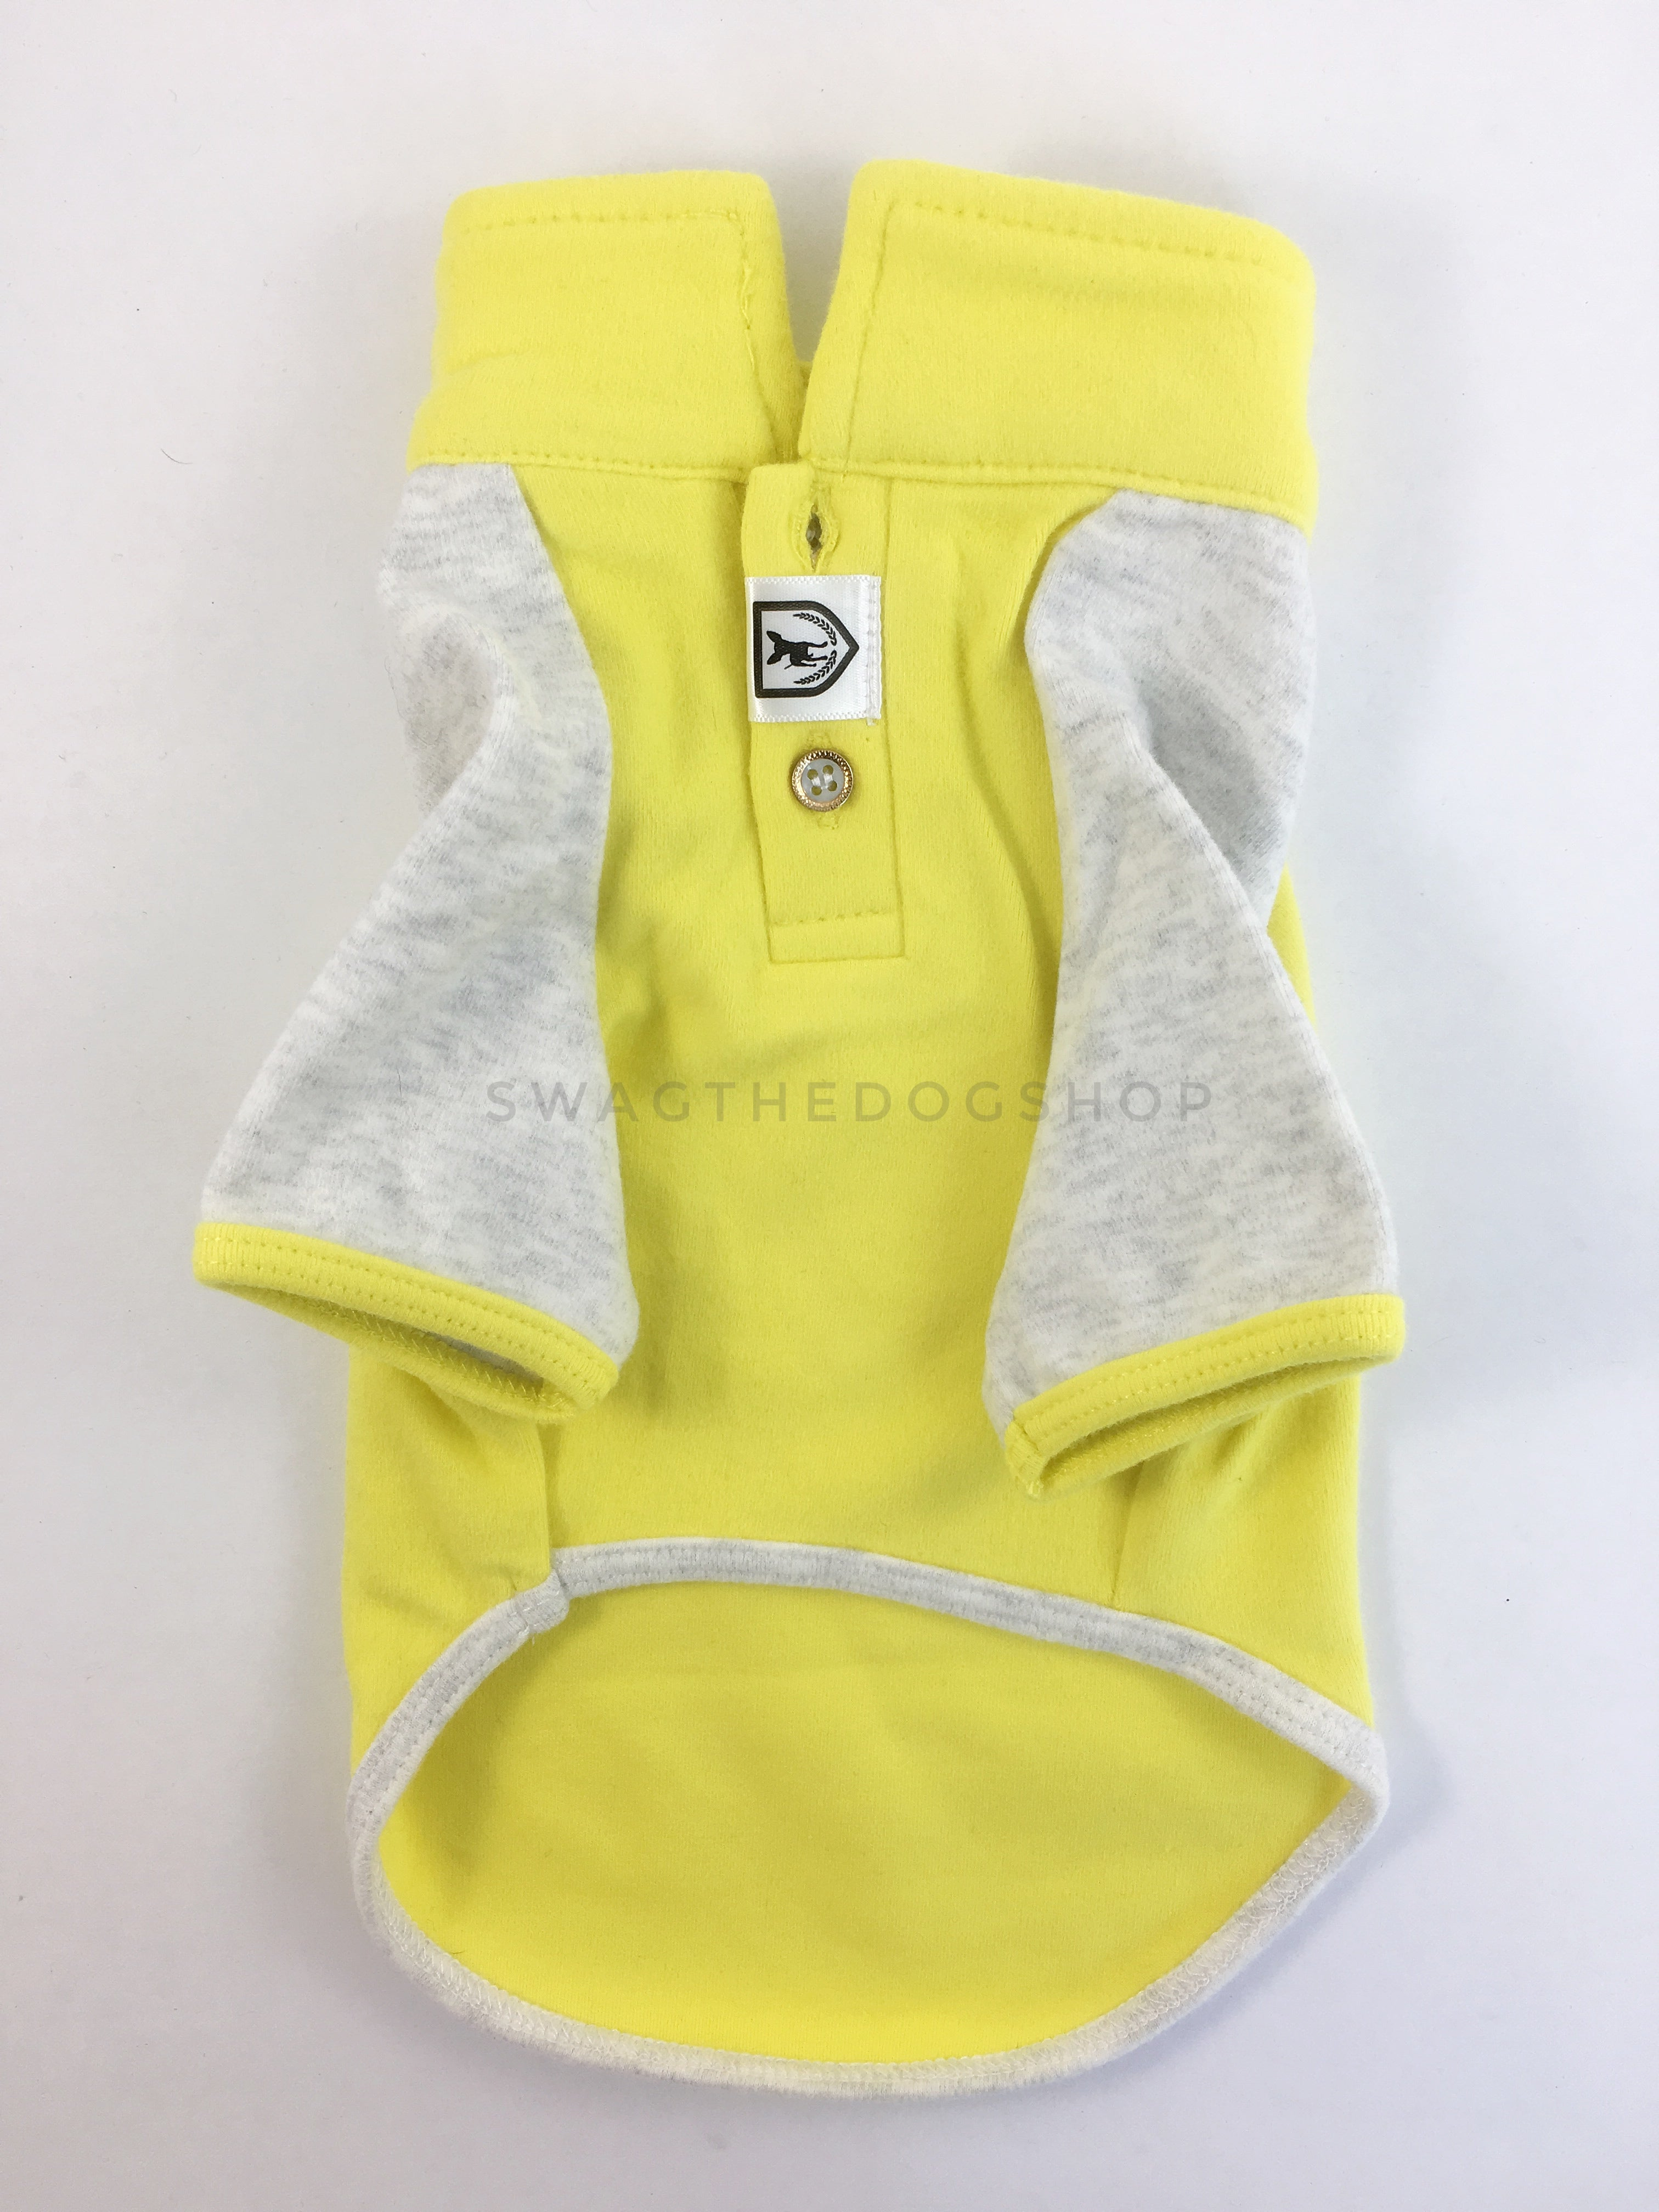 Surfside Lemon Yellow Polo Shirt - Product Front View. Lemon Yellow with Light Gray Sleeves Polo Shirt